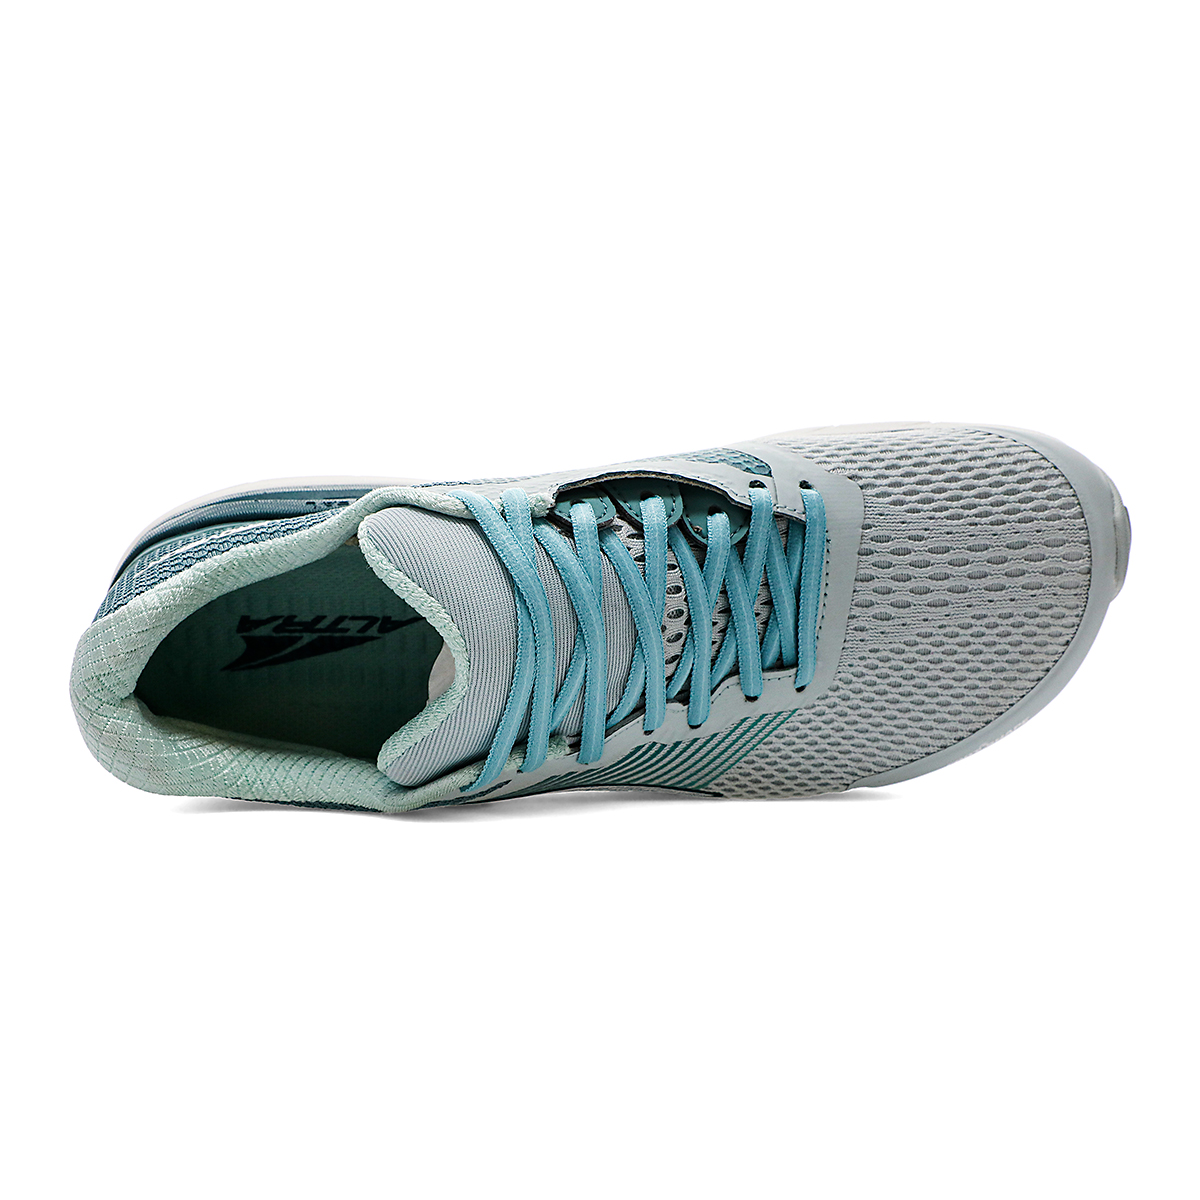 Women's Altra Provision 4 Running Shoe - Color: Ice Flow Blue - Size: 5.5 - Width: Regular, Ice Flow Blue, large, image 3